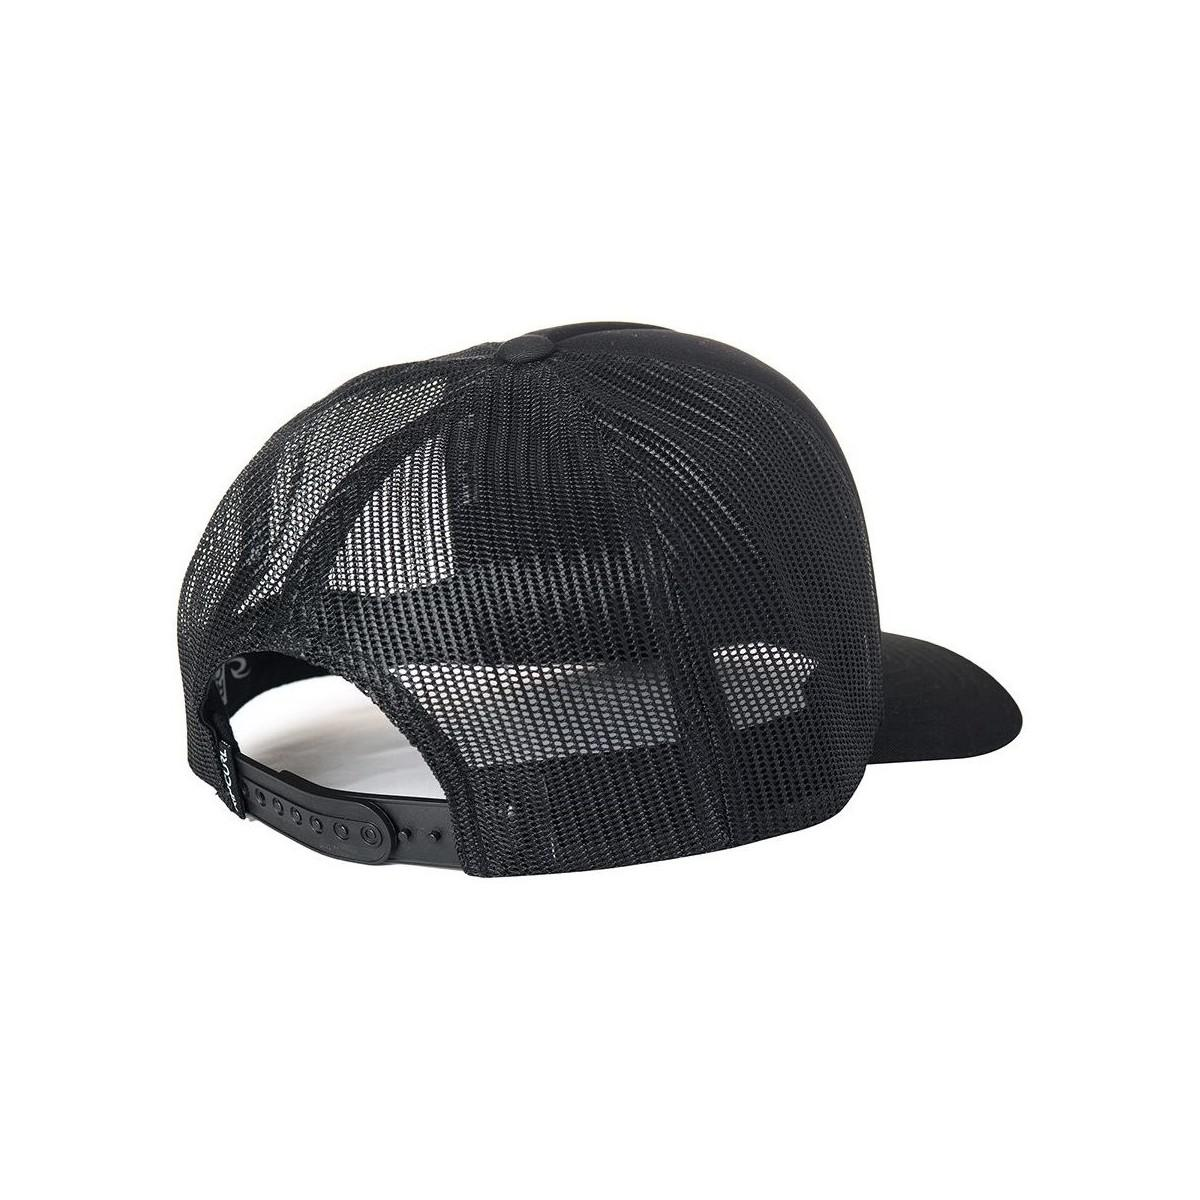 Rip Curl Rc Original Trucker Cap Ccadf4 Men s Cap In Black in Black ... 64237fa58415